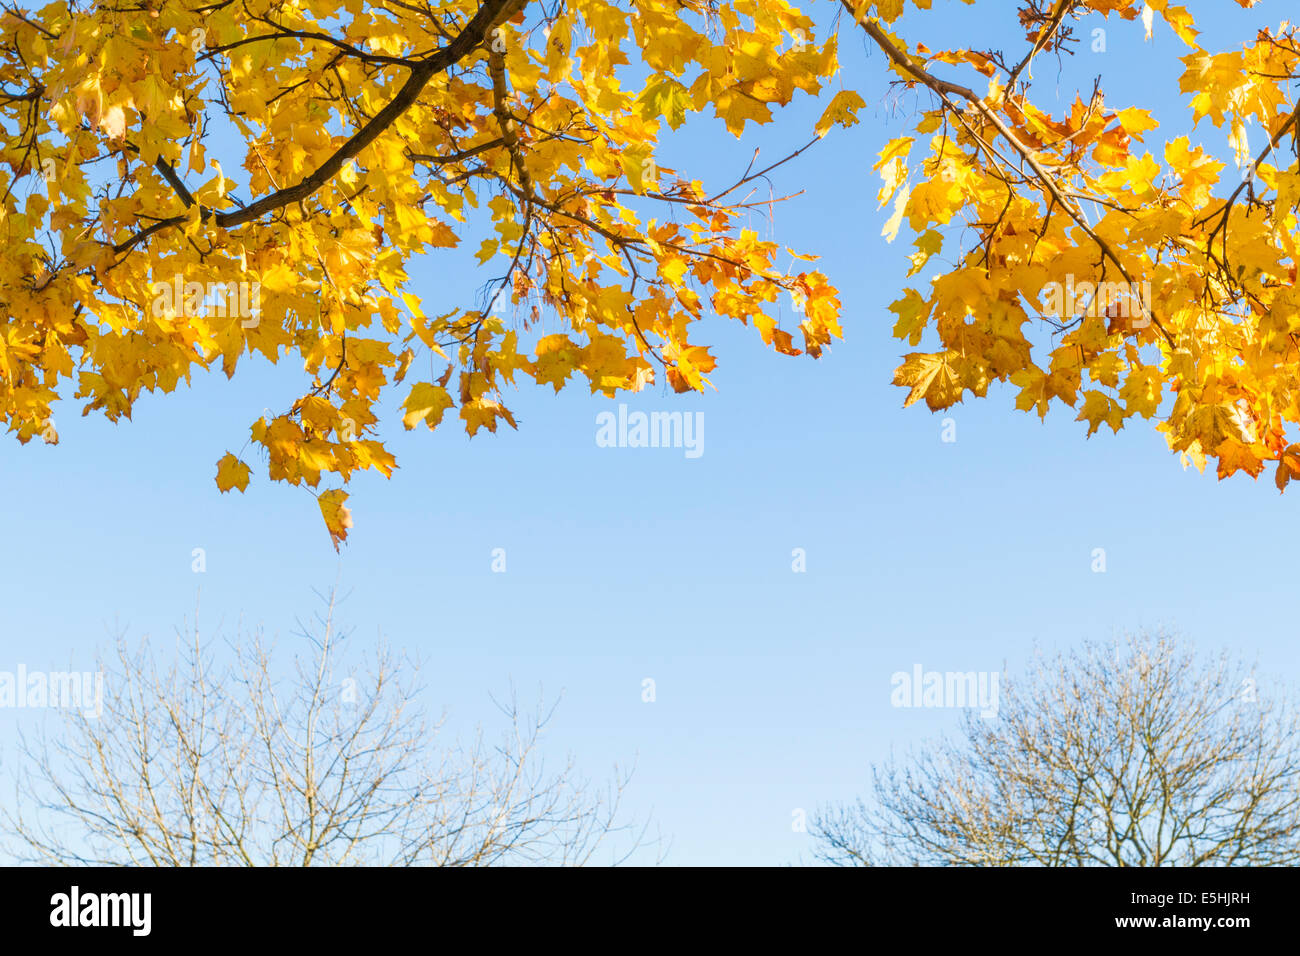 Underneath the branches of Autumn leaves on a Norway Maple tree (Acer platanoides) with other bare trees in the - Stock Image